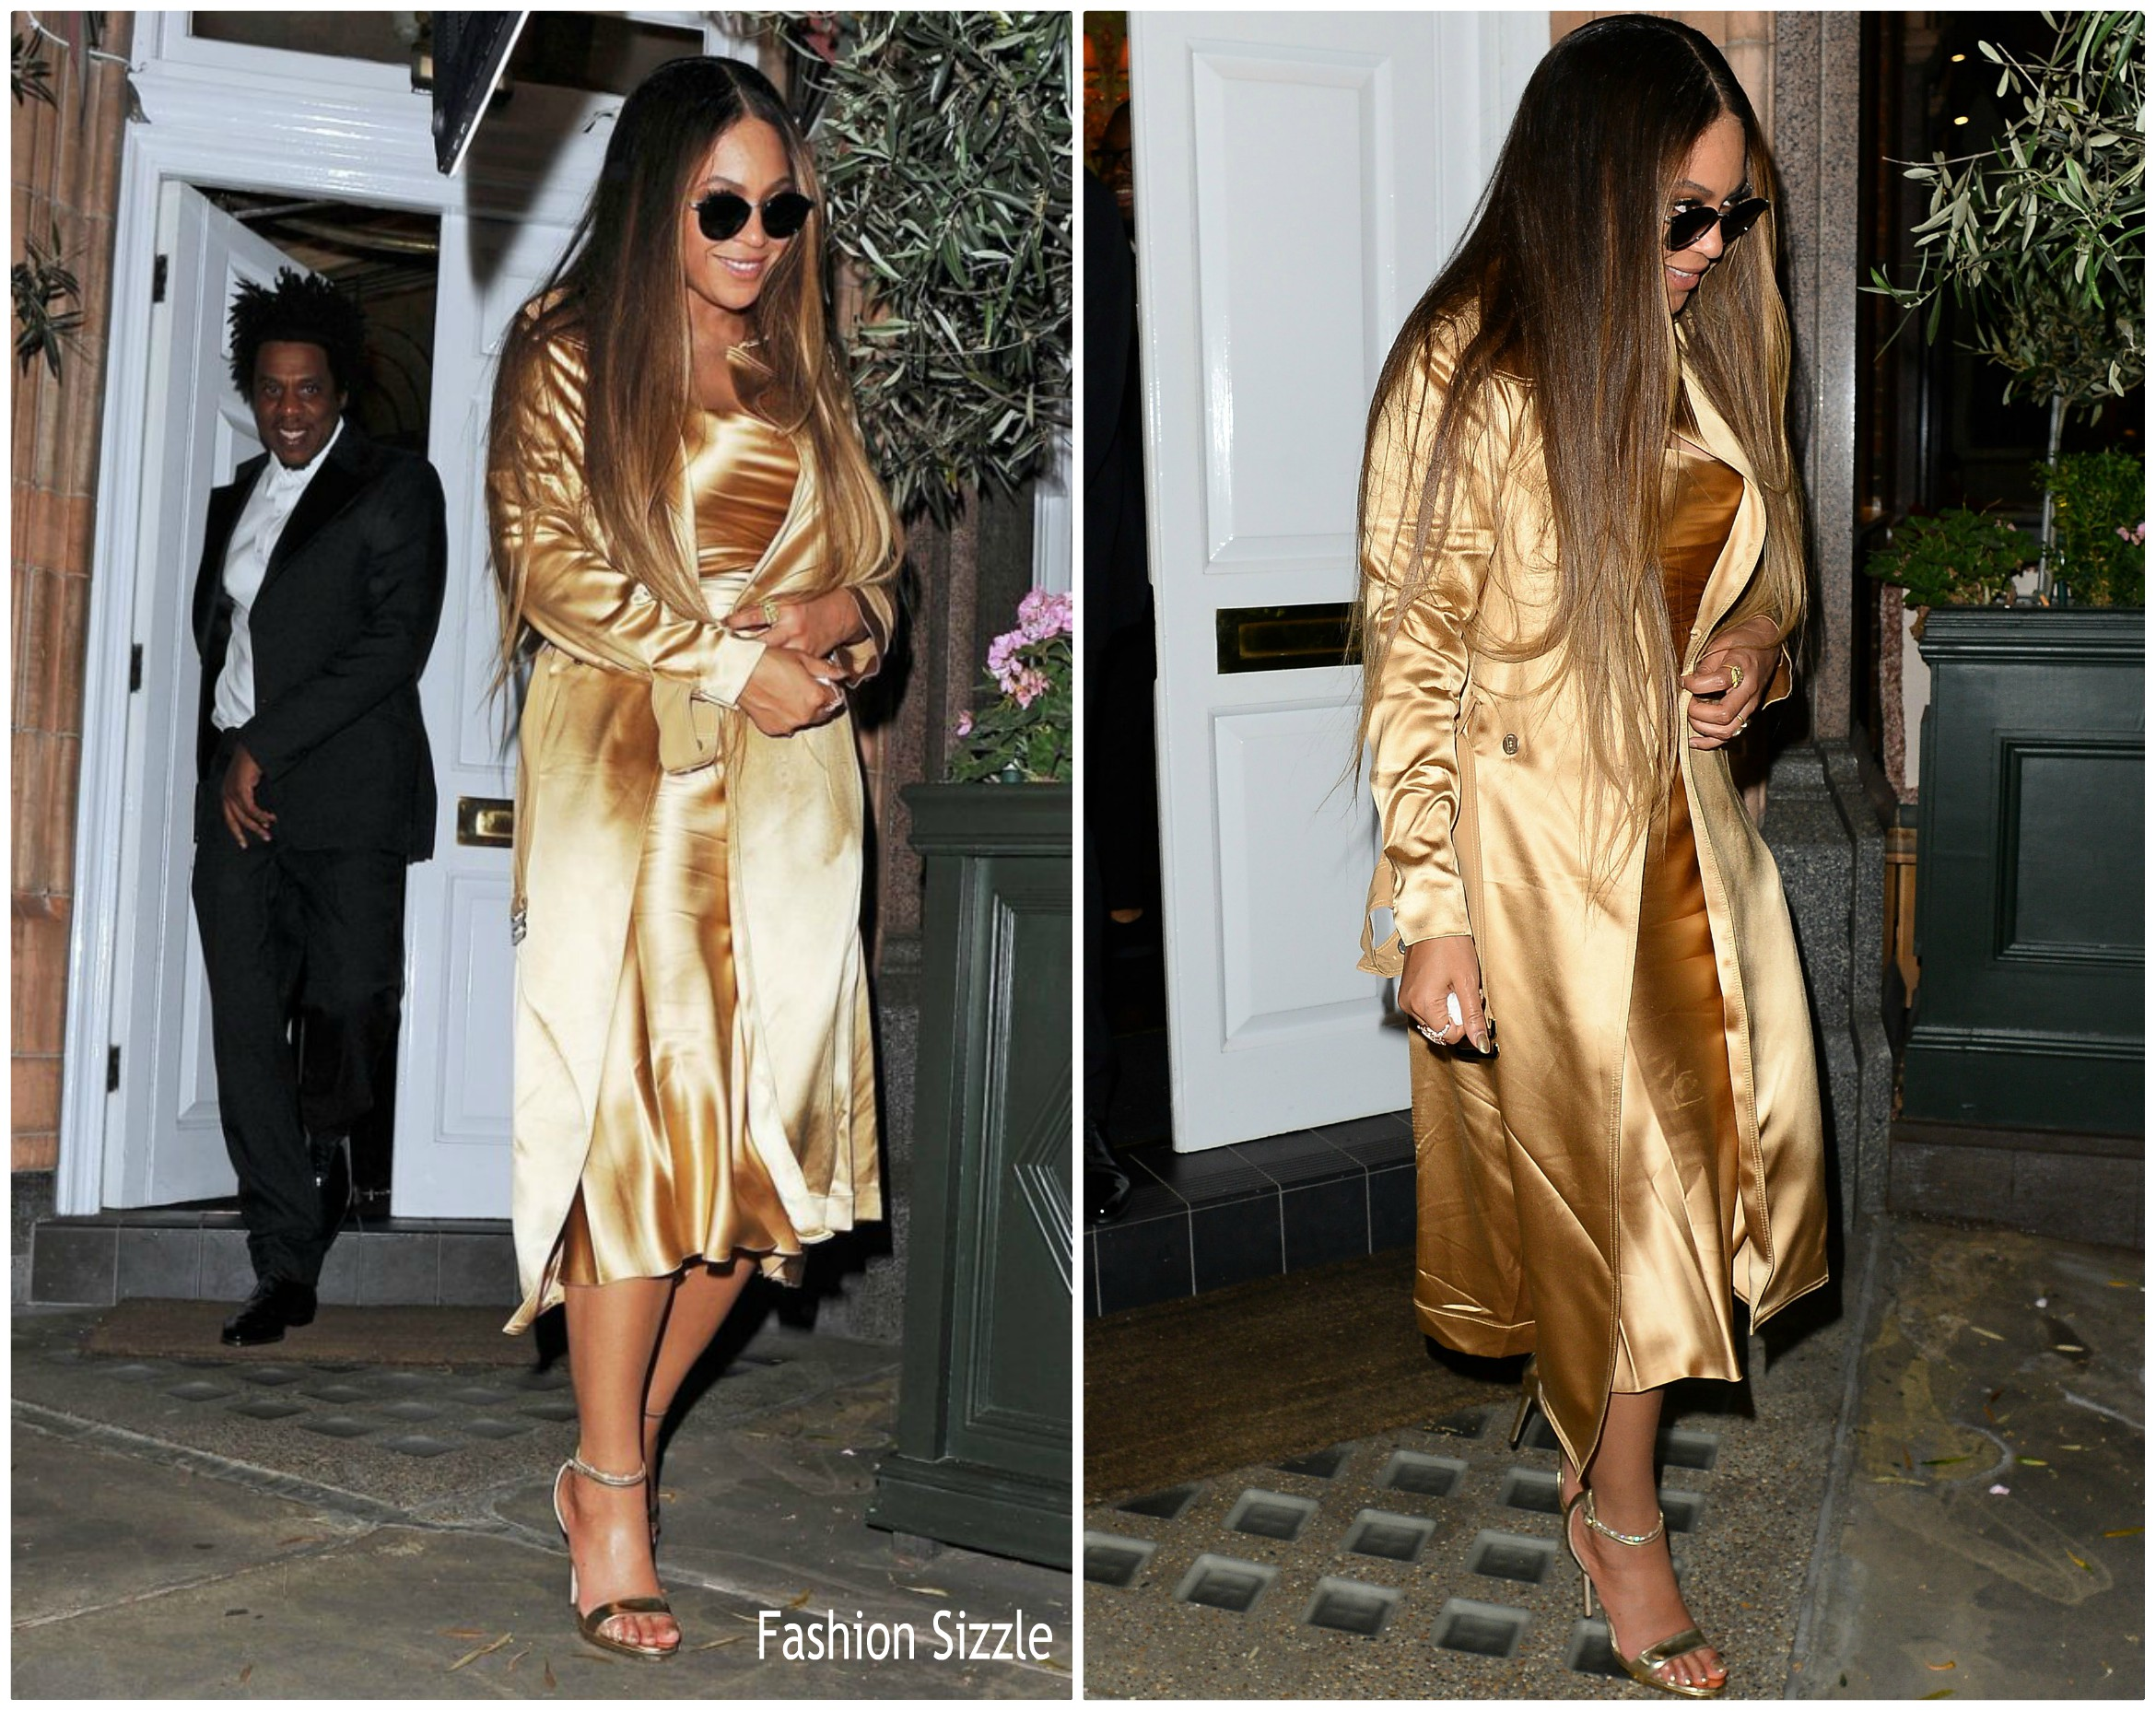 beyonce-knowles-in-dion-lee-leaving-Harrys-bar-london